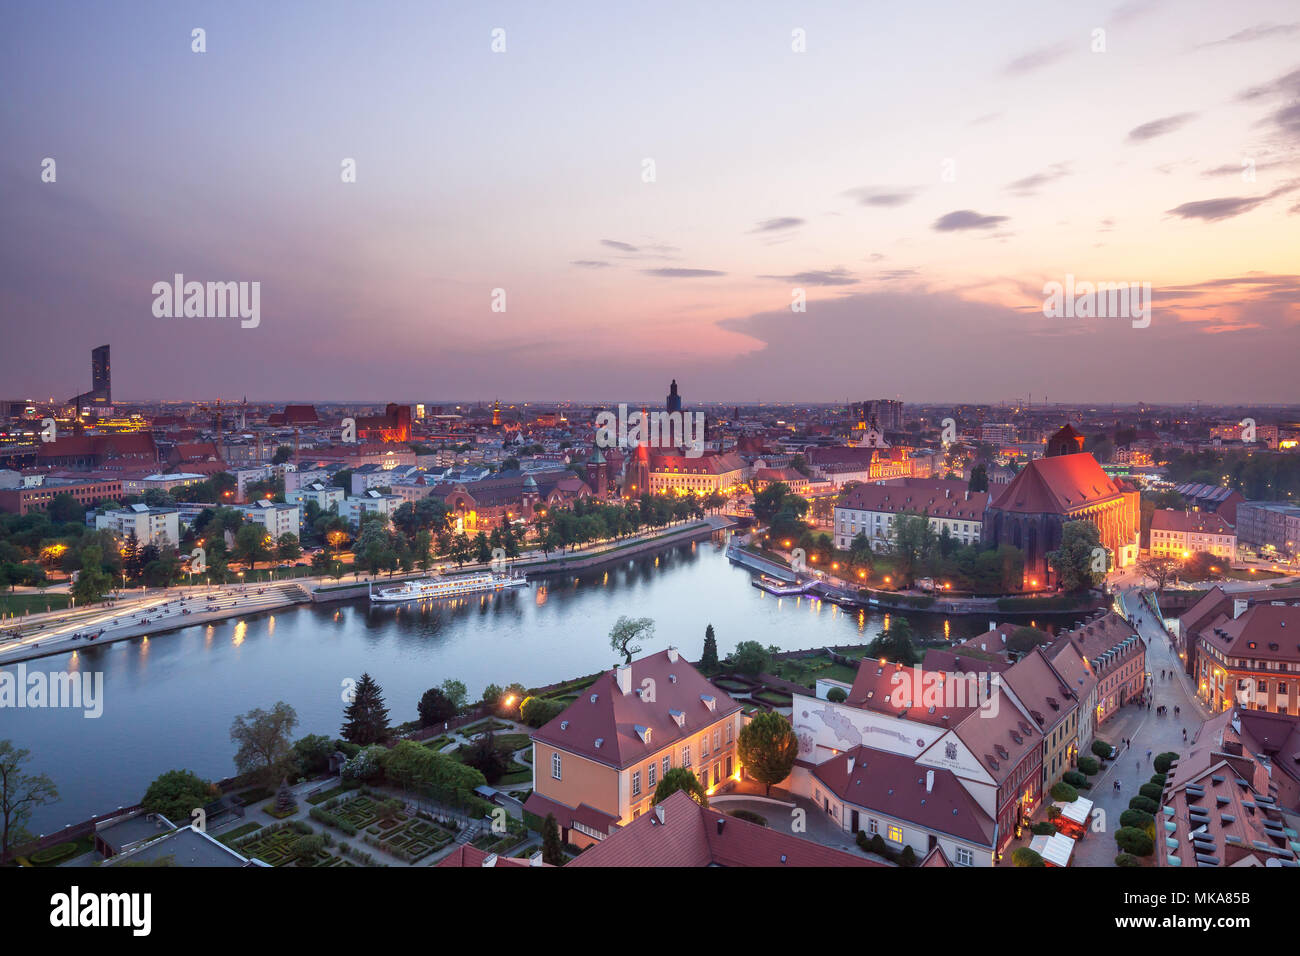 Wroclaw city in Poland aerial view at night - Stock Image